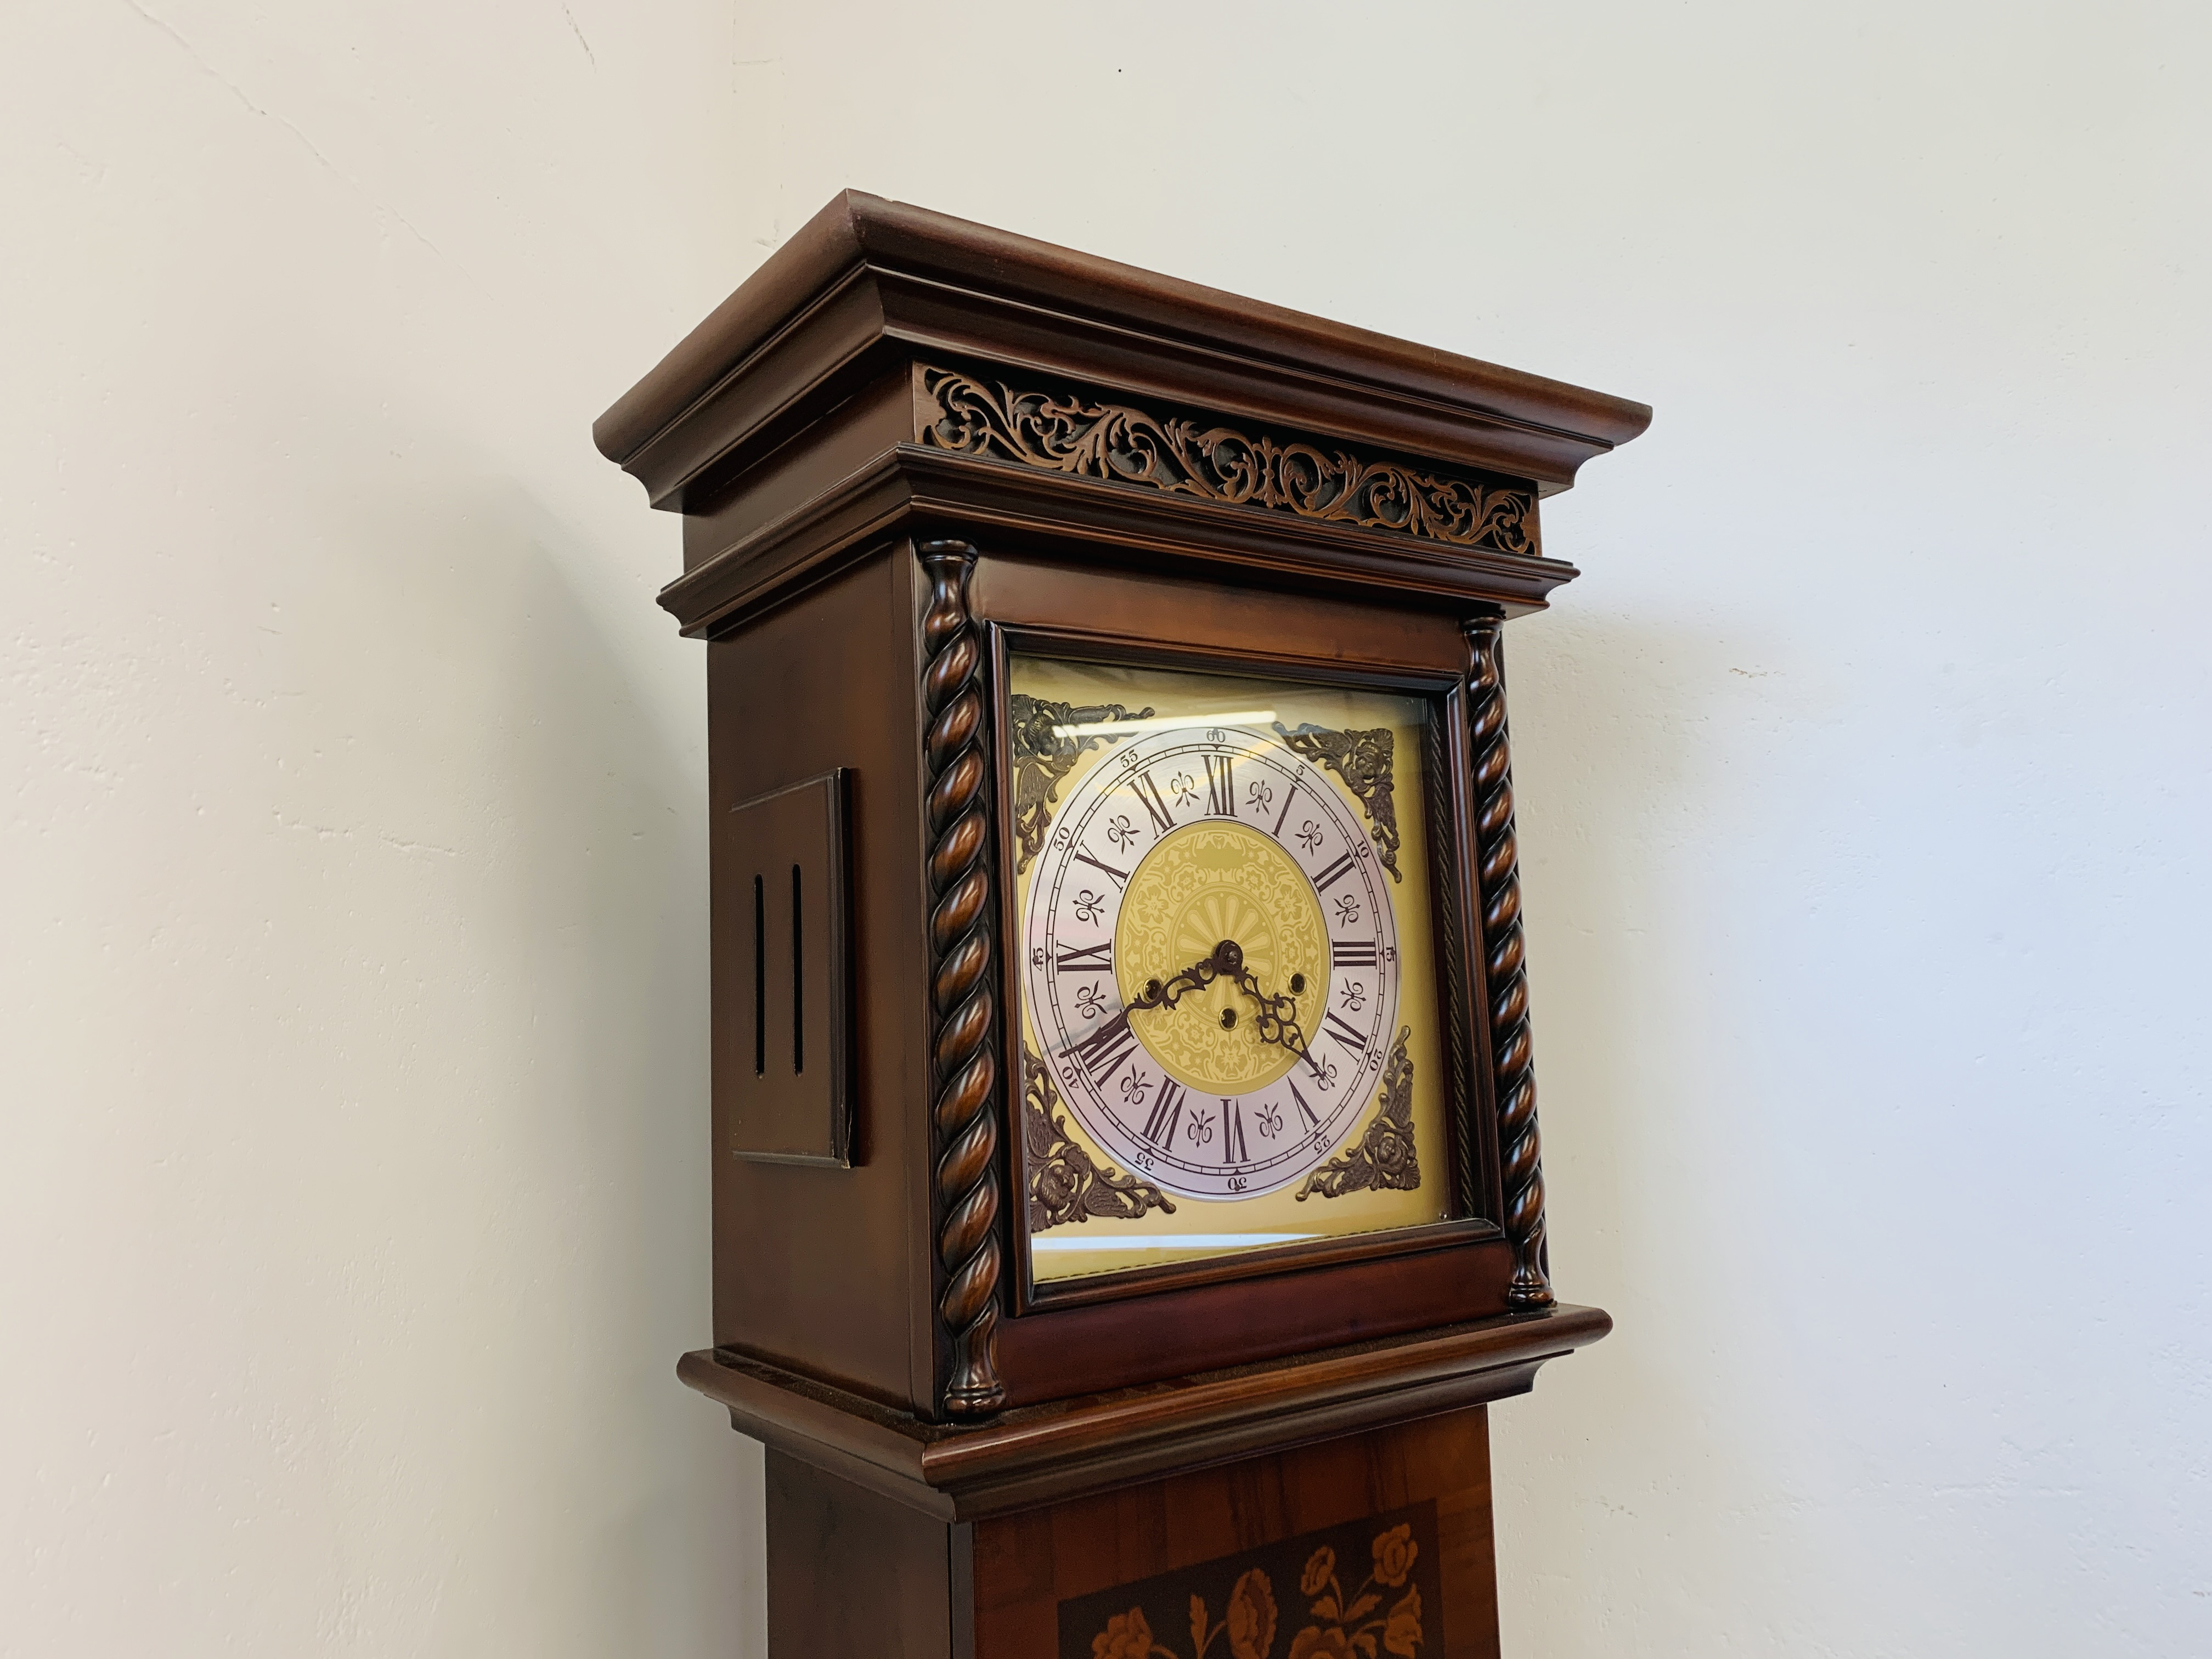 A GOOD QUALITY REPRODUCTION LONG CASE CLOCK - WESTMINSTER CHIME - SOLD AS SEEN - Image 5 of 19